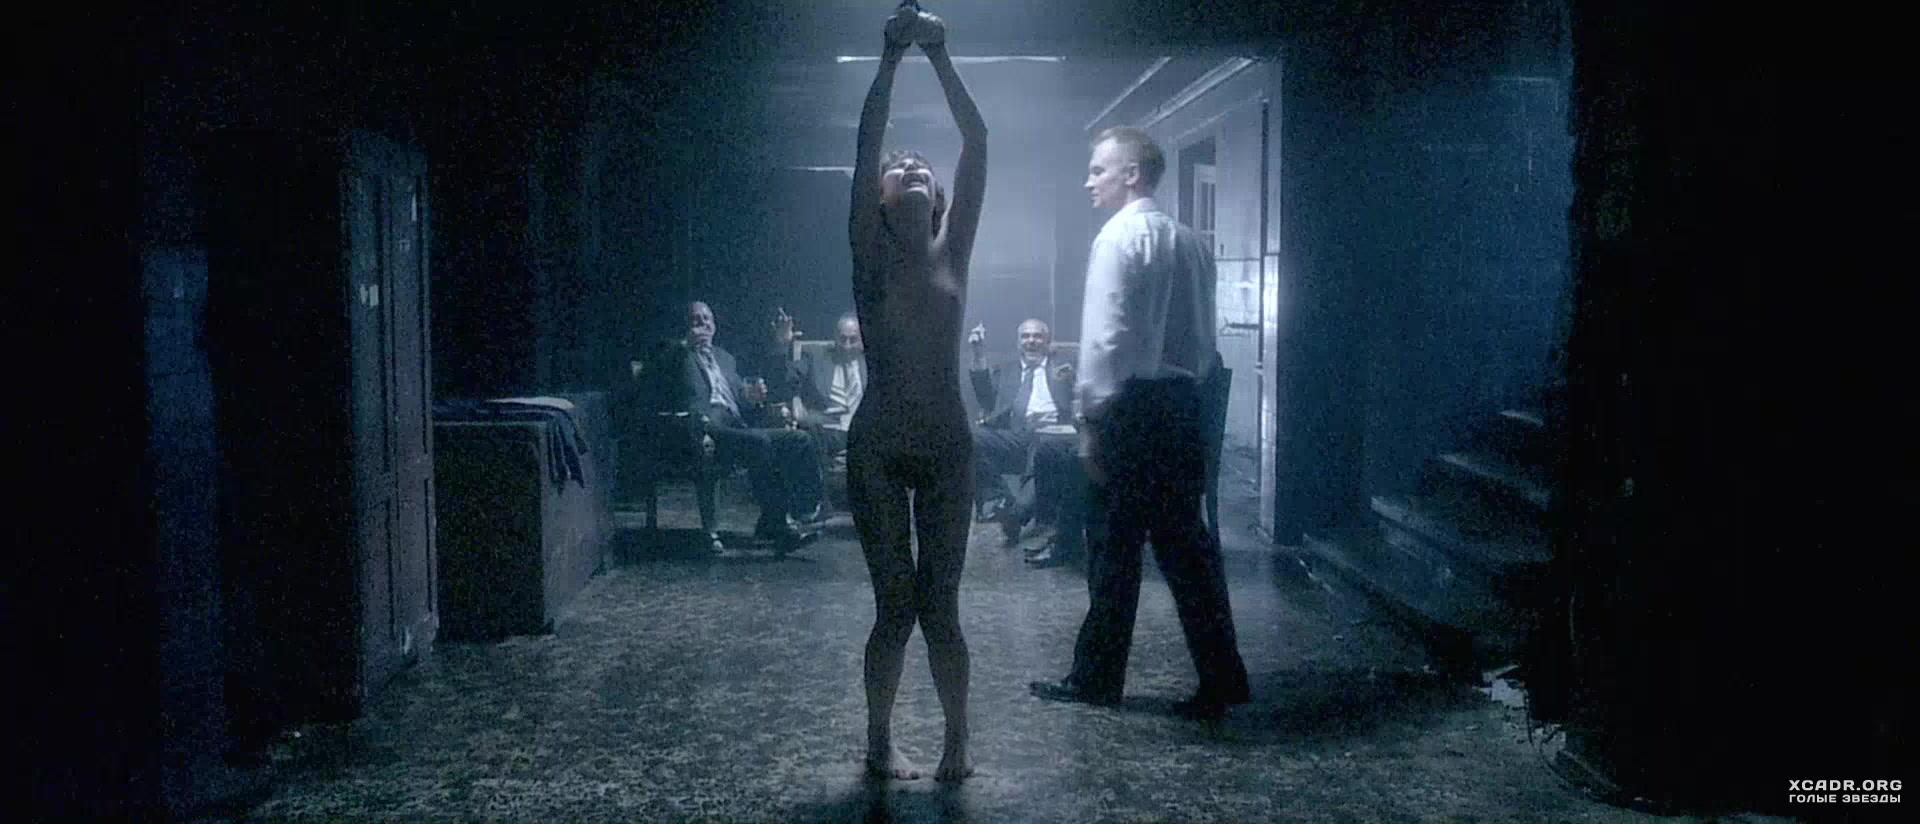 Hitman nude scene fucks video